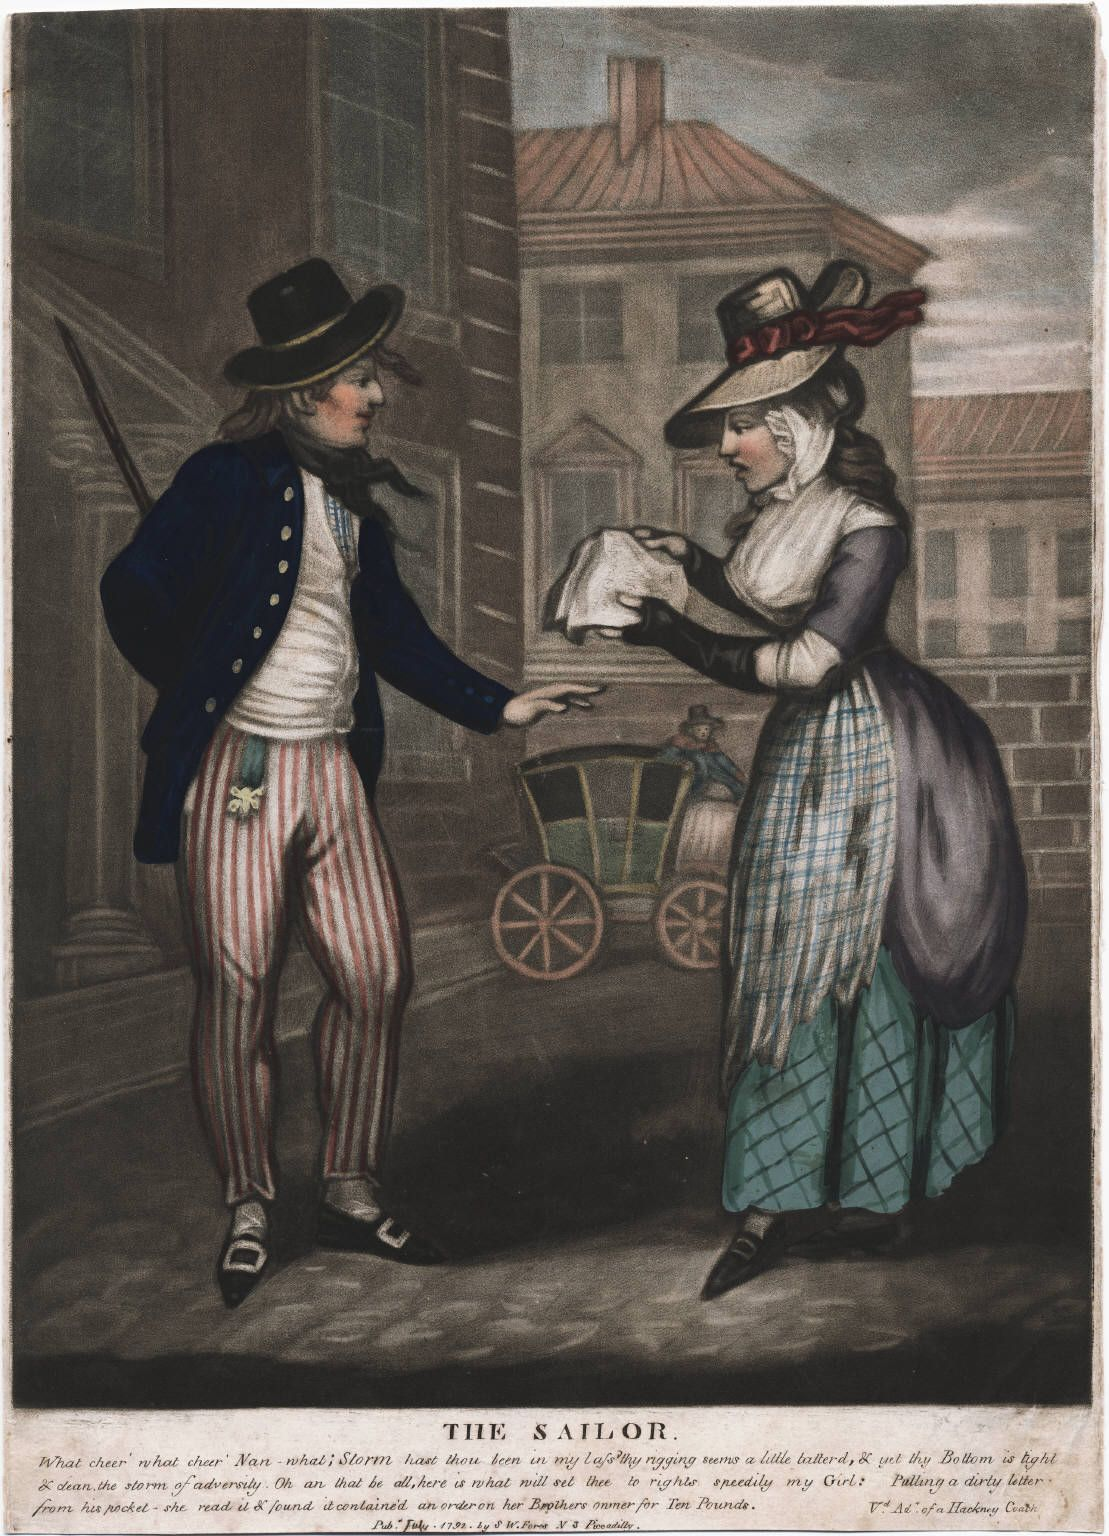 She's natty... and yet her apron's pretty ratty!!     Title:  The sailor  Published:  [London] : Pub. July 1792 by S.W. Fores, N. 3 Piccadilly, [1792]